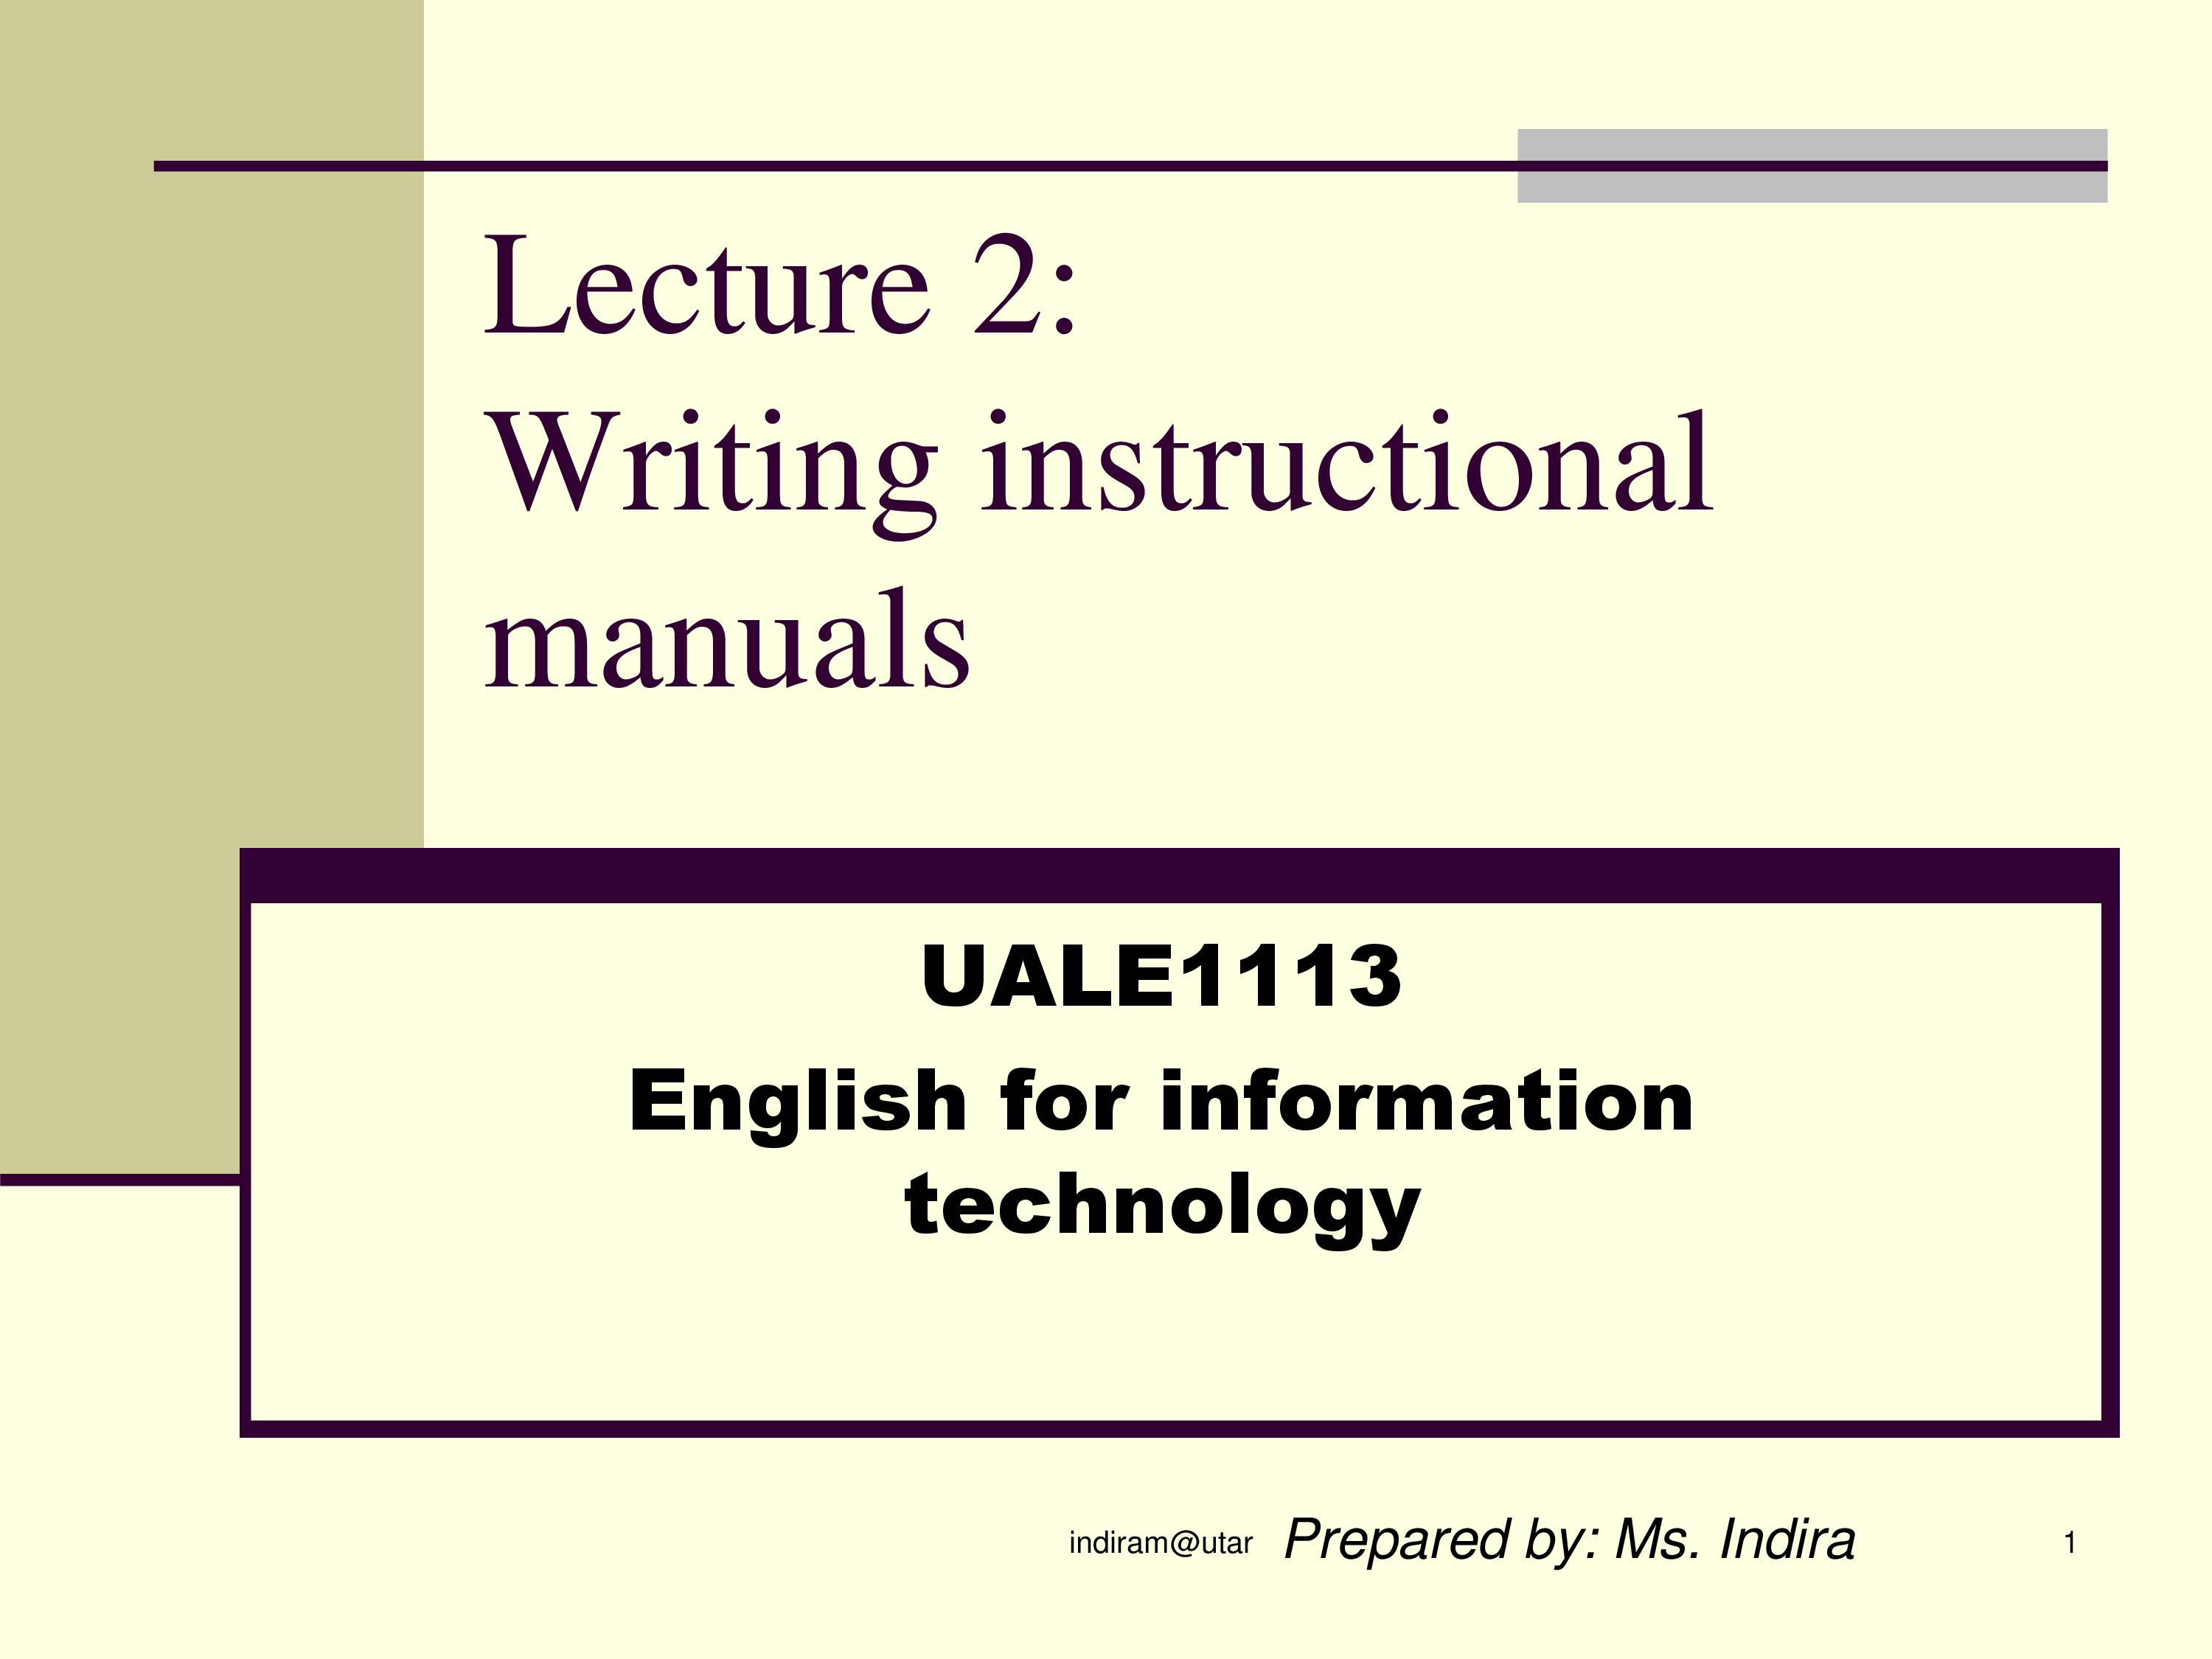 PPT On Writing Instructional Manual